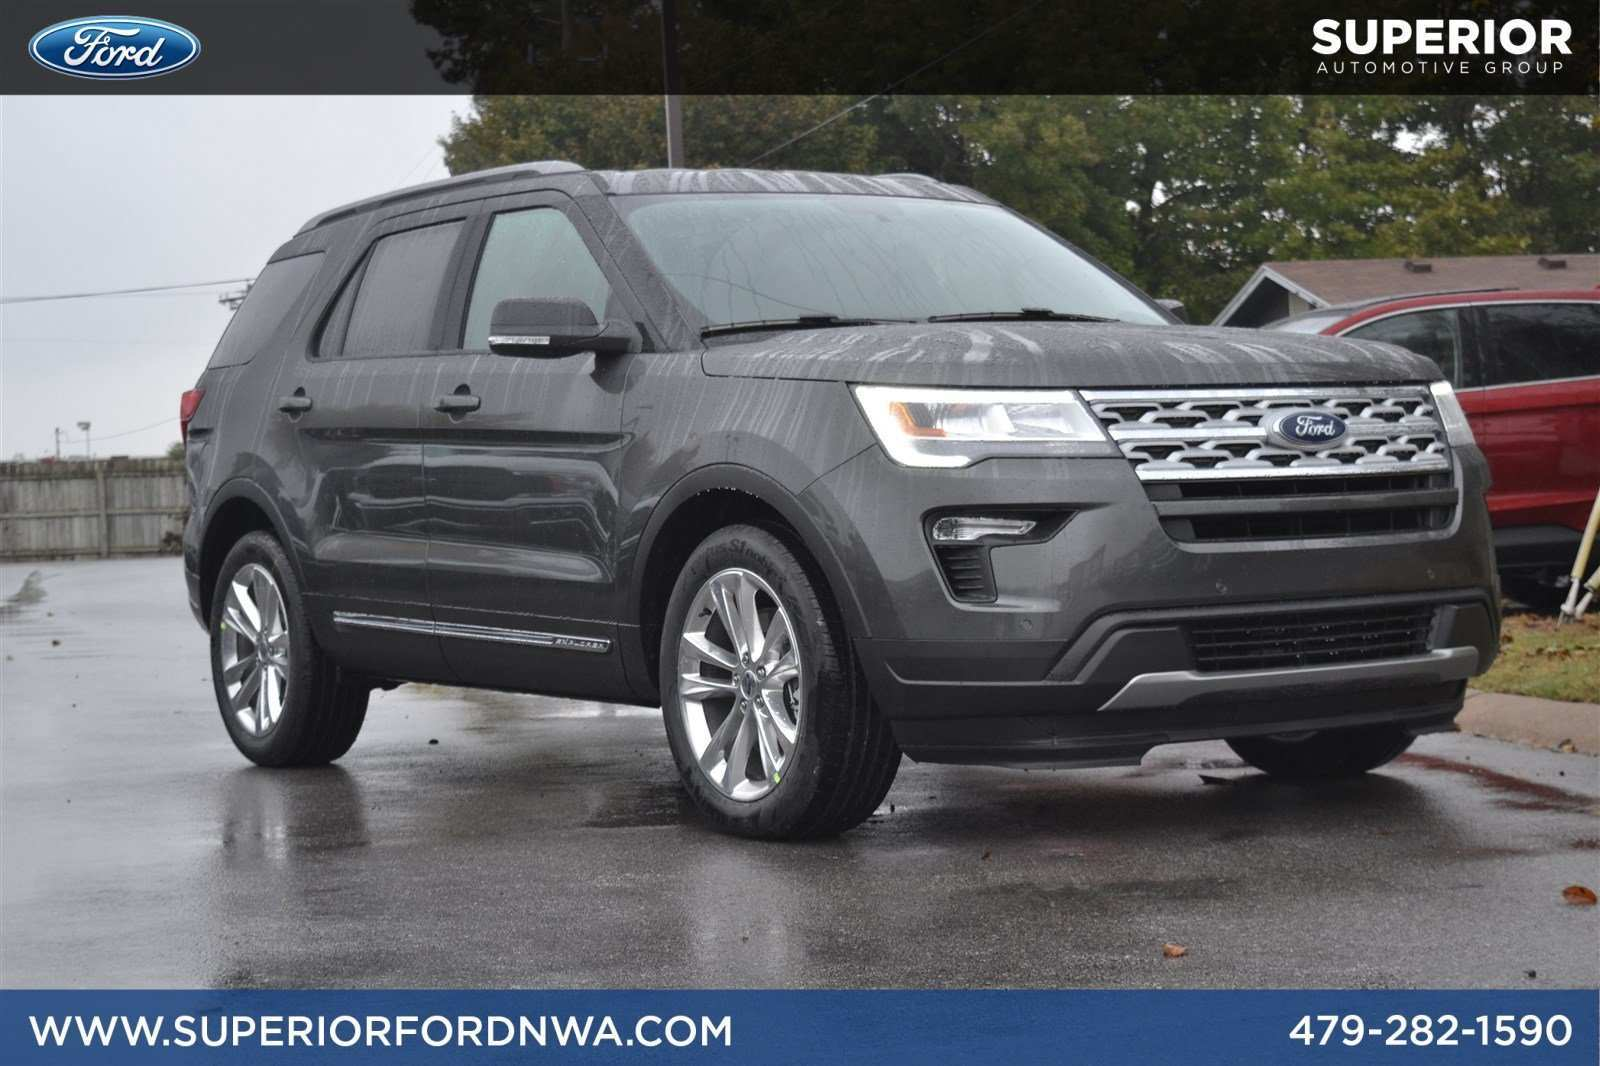 33 All New 2019 Ford Explorer Release